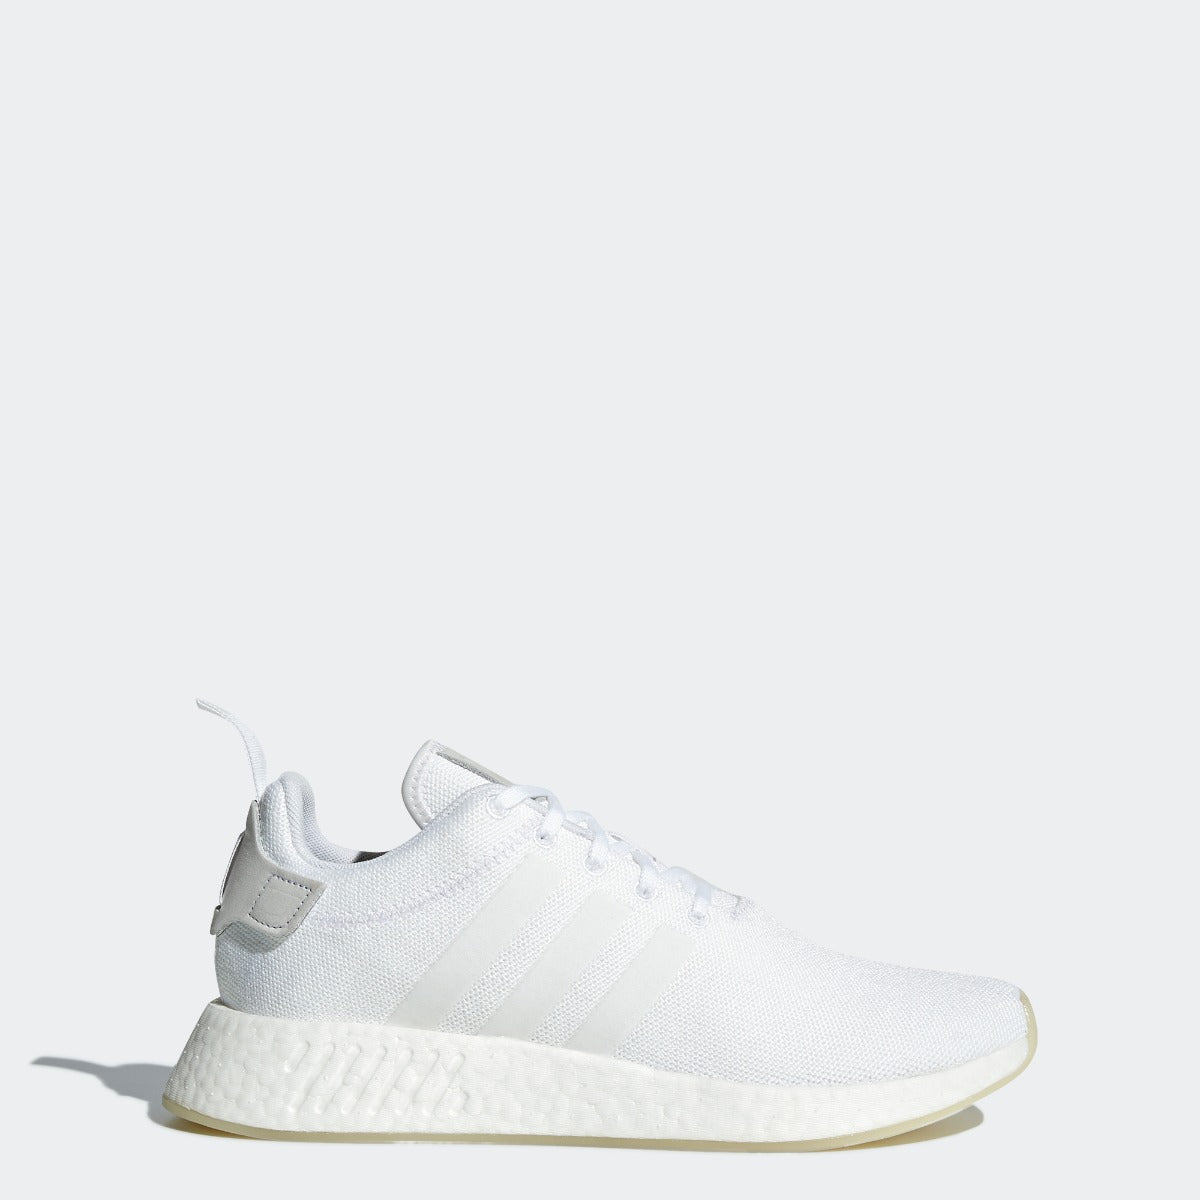 55d640789 Men s adidas Originals NMD R2 Shoes Cloud White CQ2401